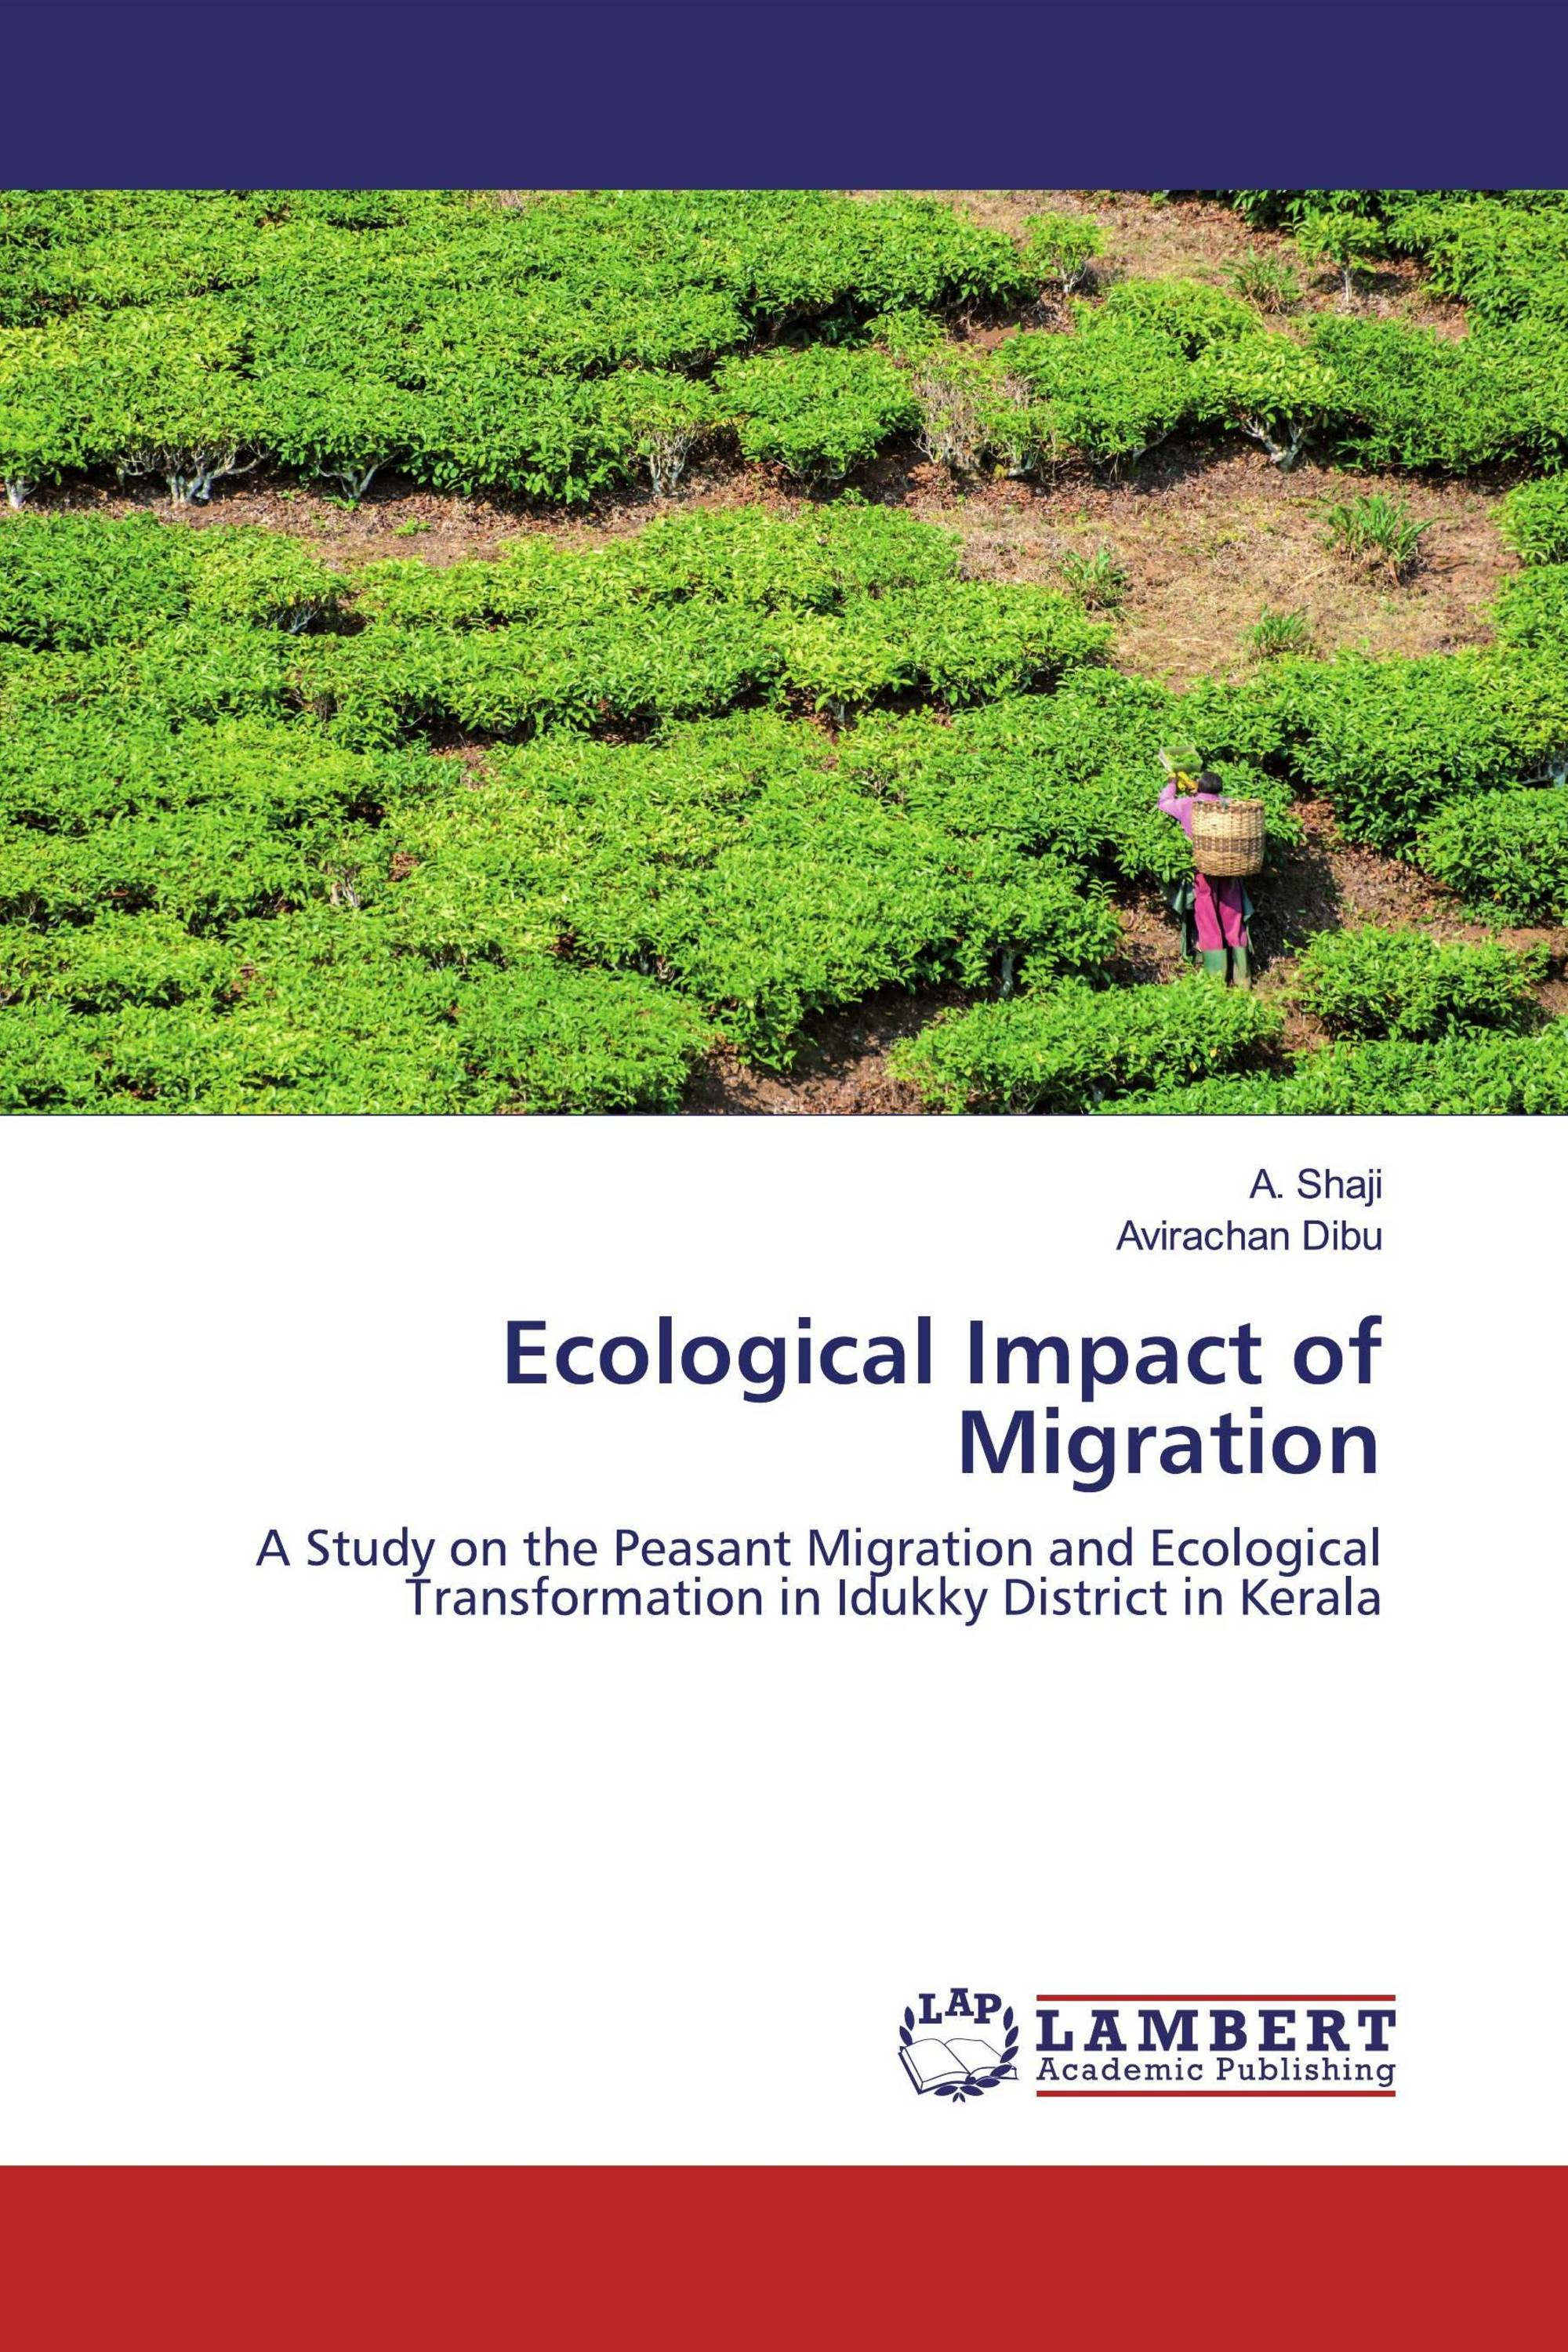 Ecological Impact of Migration